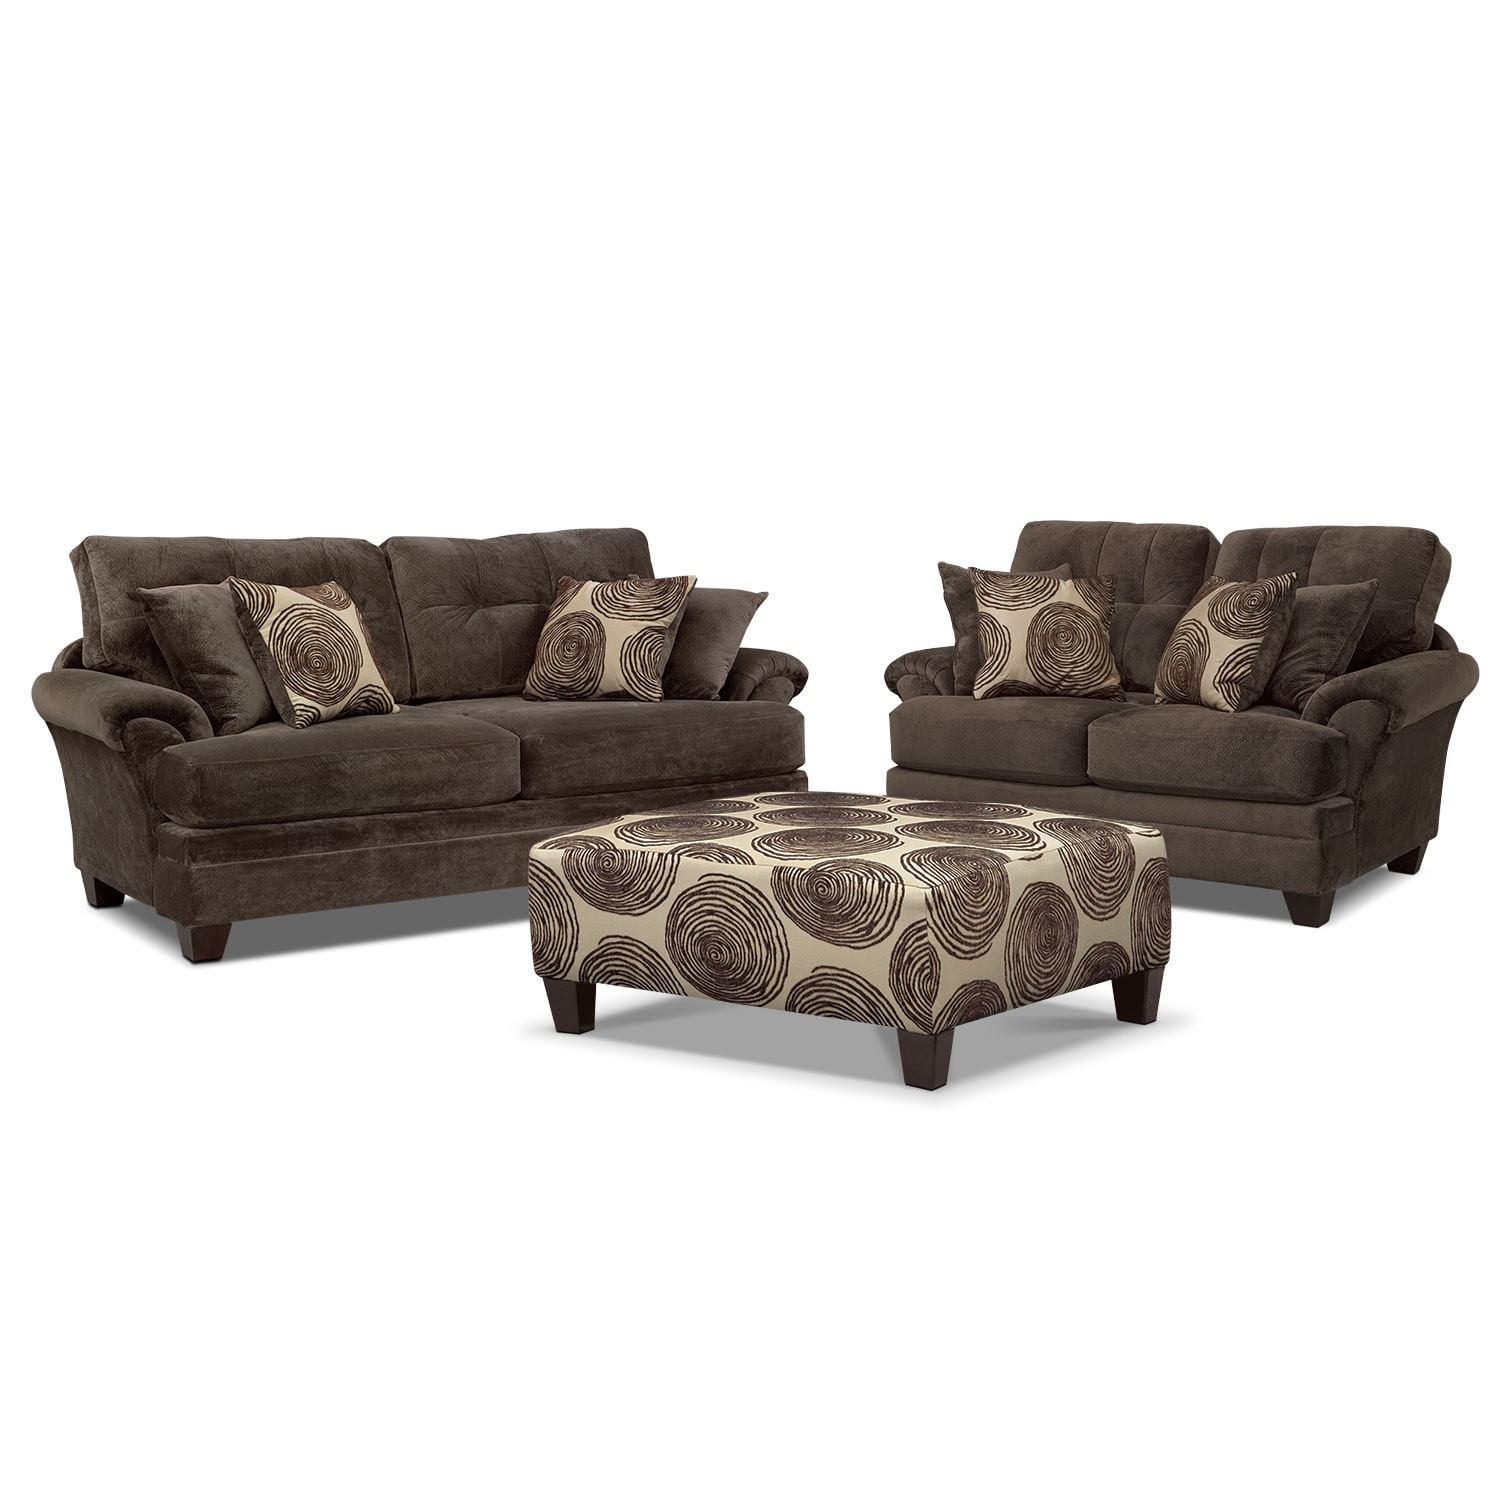 Living Room Furniture   Cordelle Sofa, Loveseat And Cocktail Ottoman Set    Chocolate